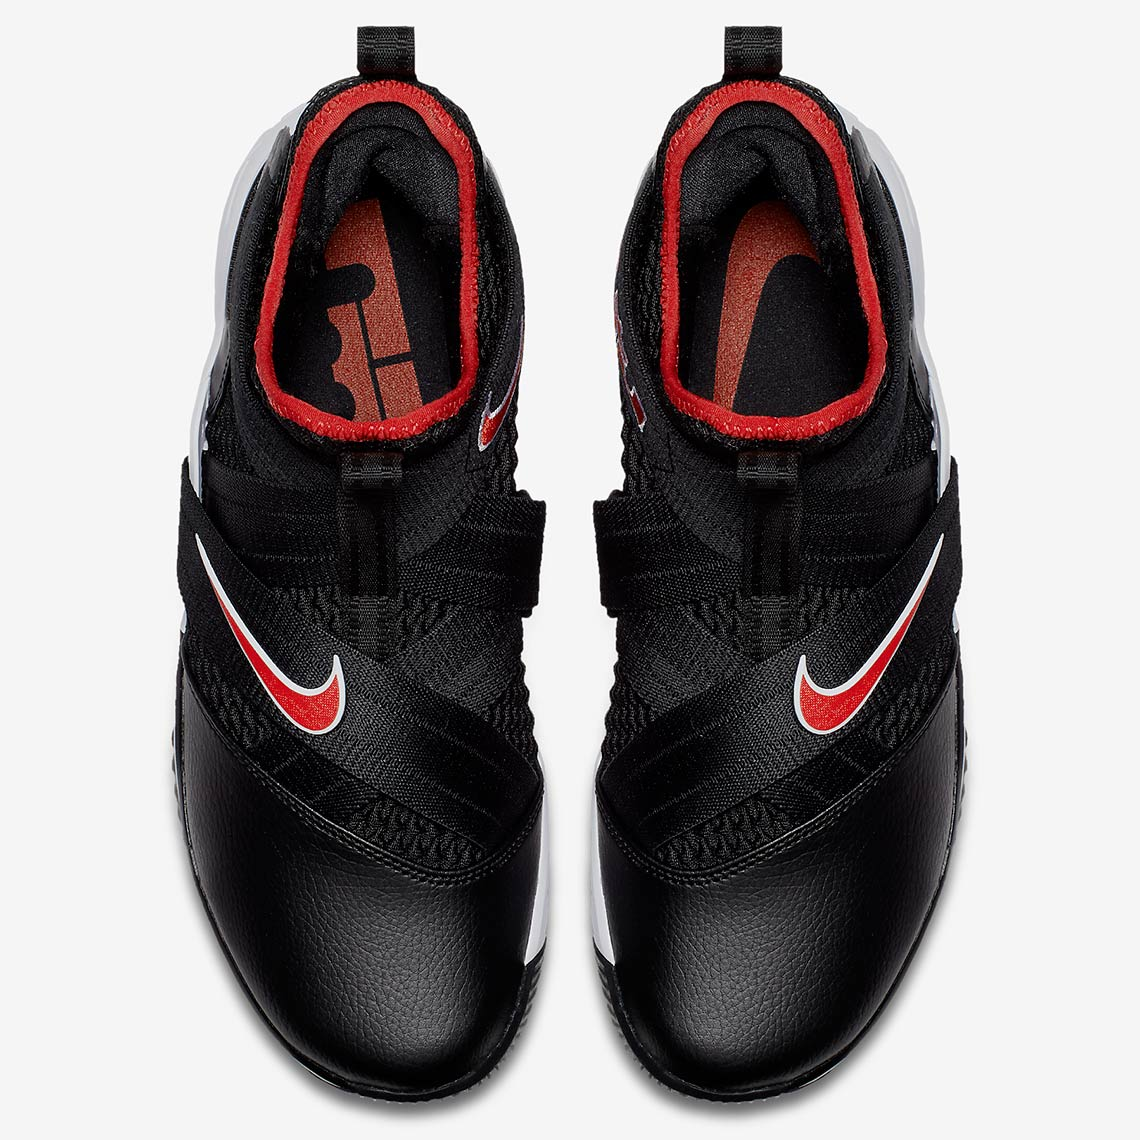 best website 77b7a c0372 Nike LeBron Soldier 12 Black/Red Release Info AO2609-001 ...